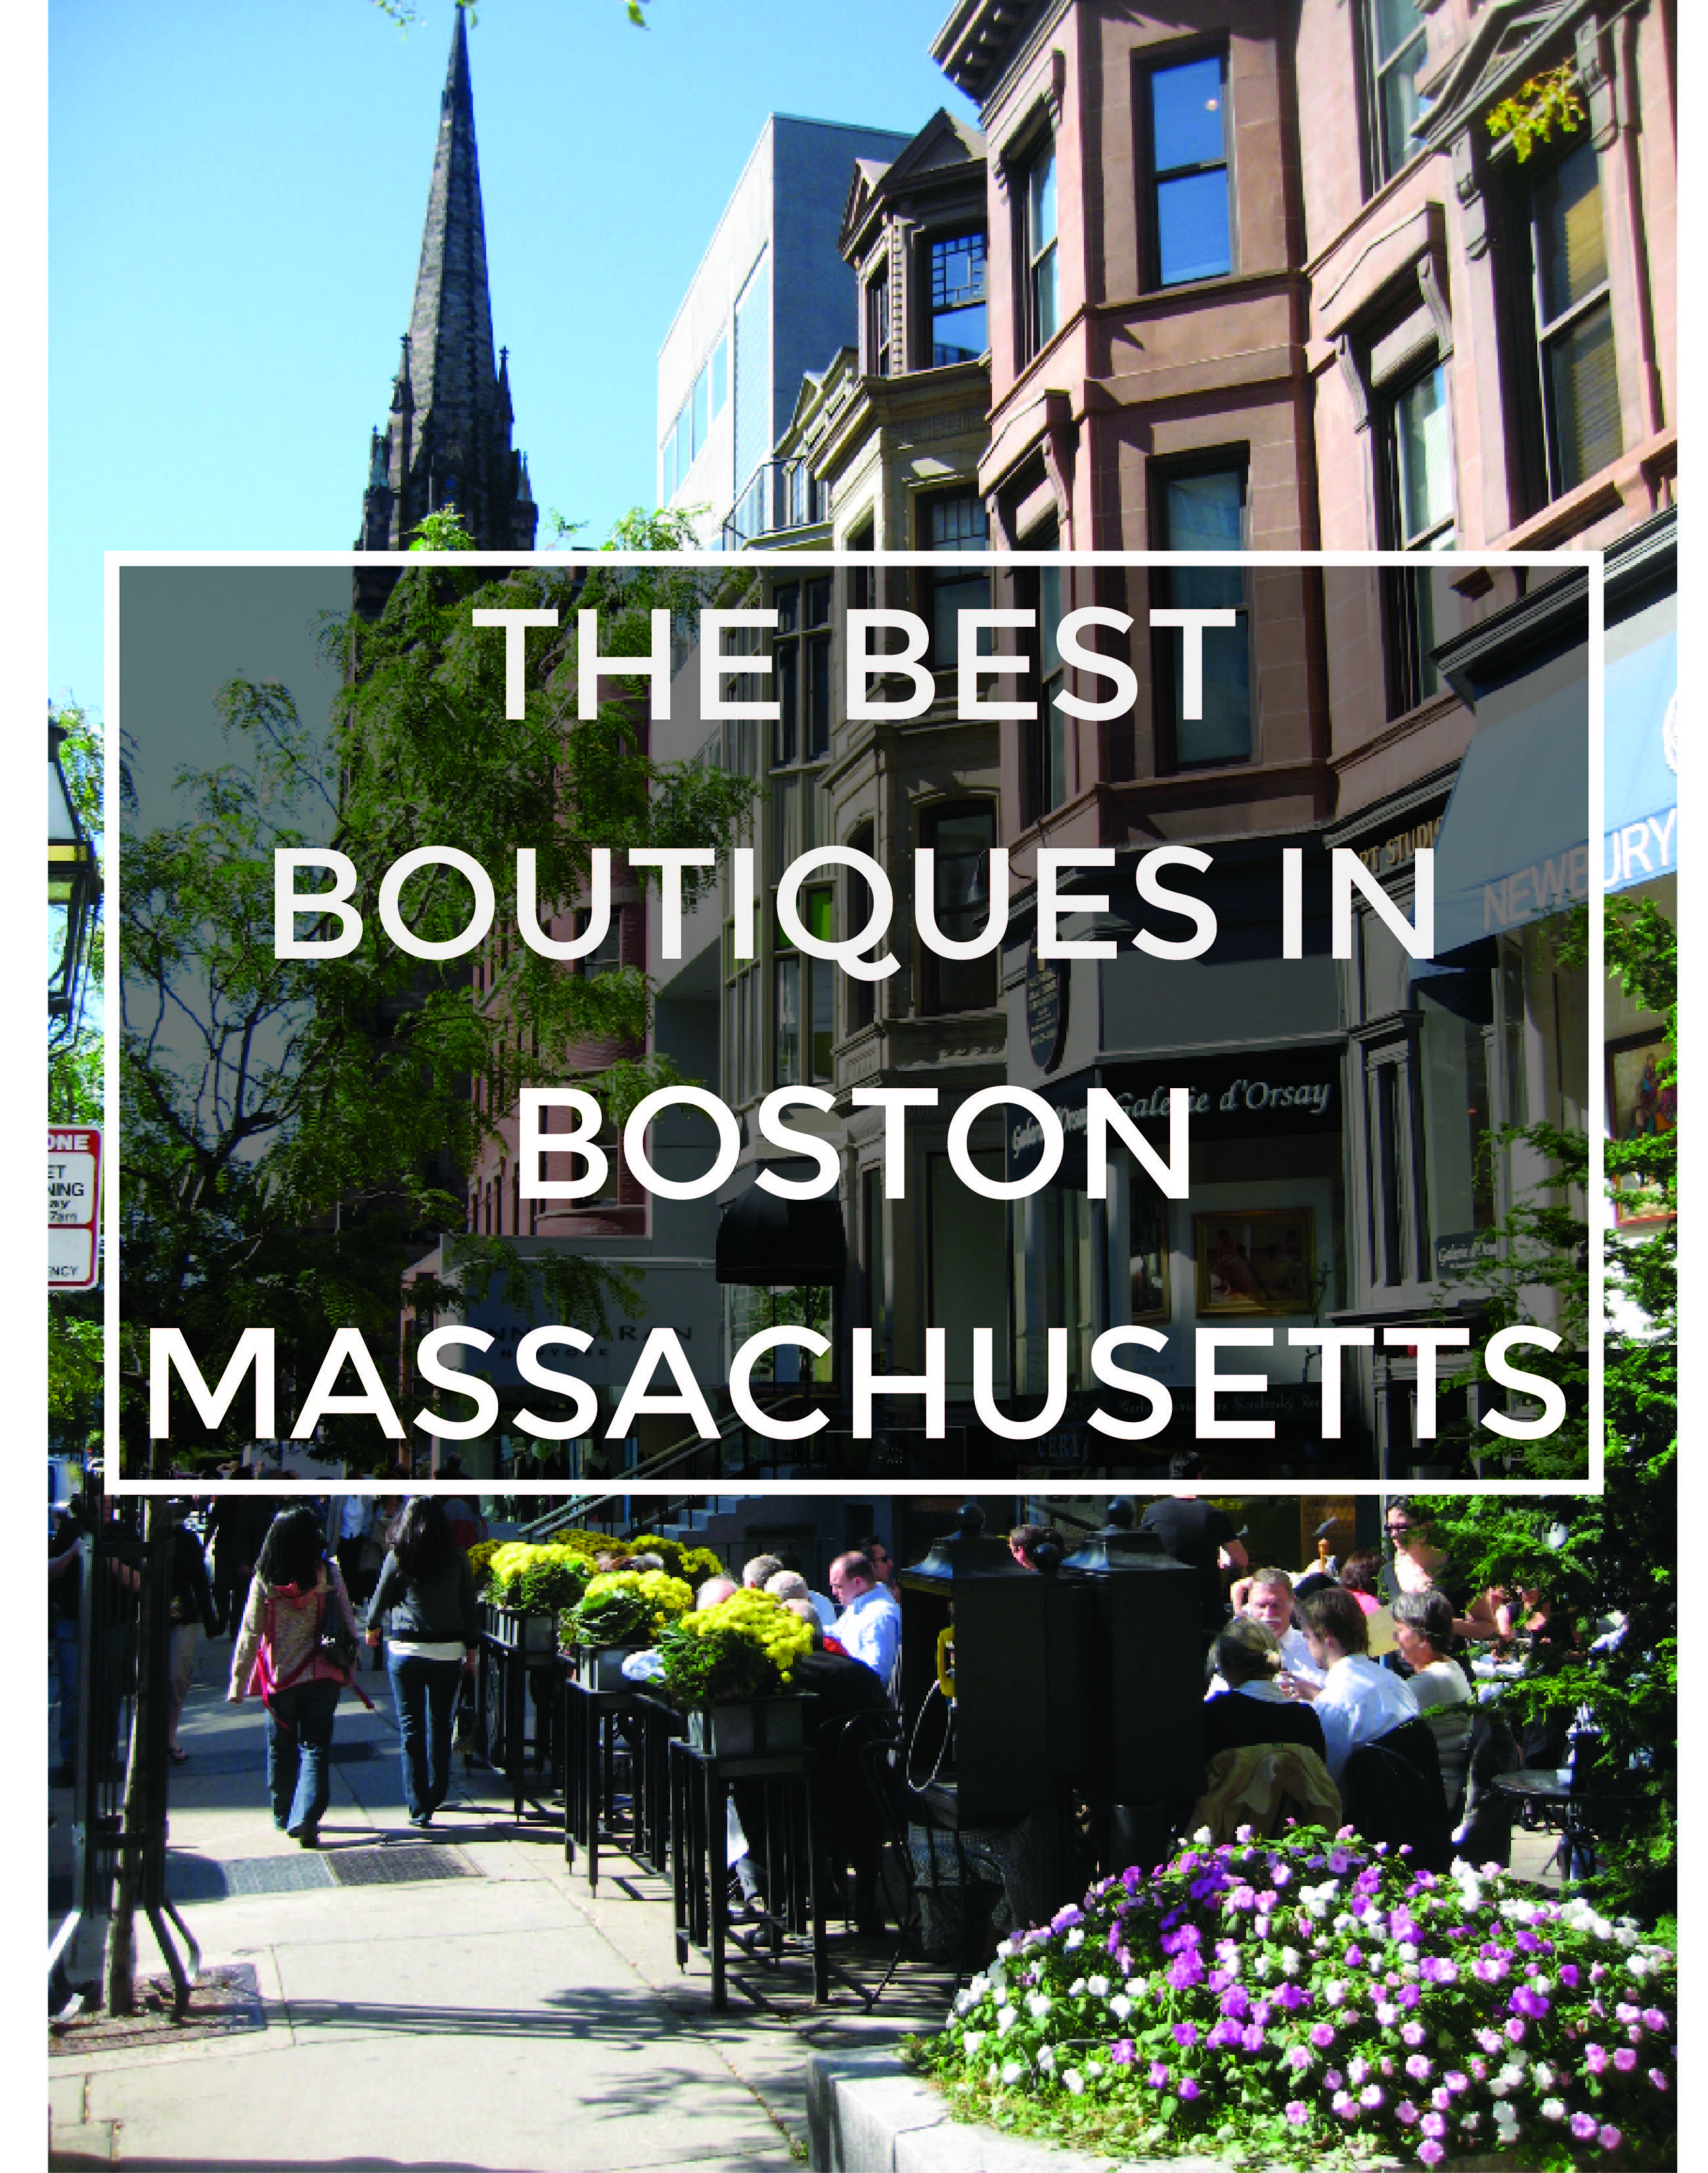 The Best Boutiques In Boston Massachusetts With Images Boston